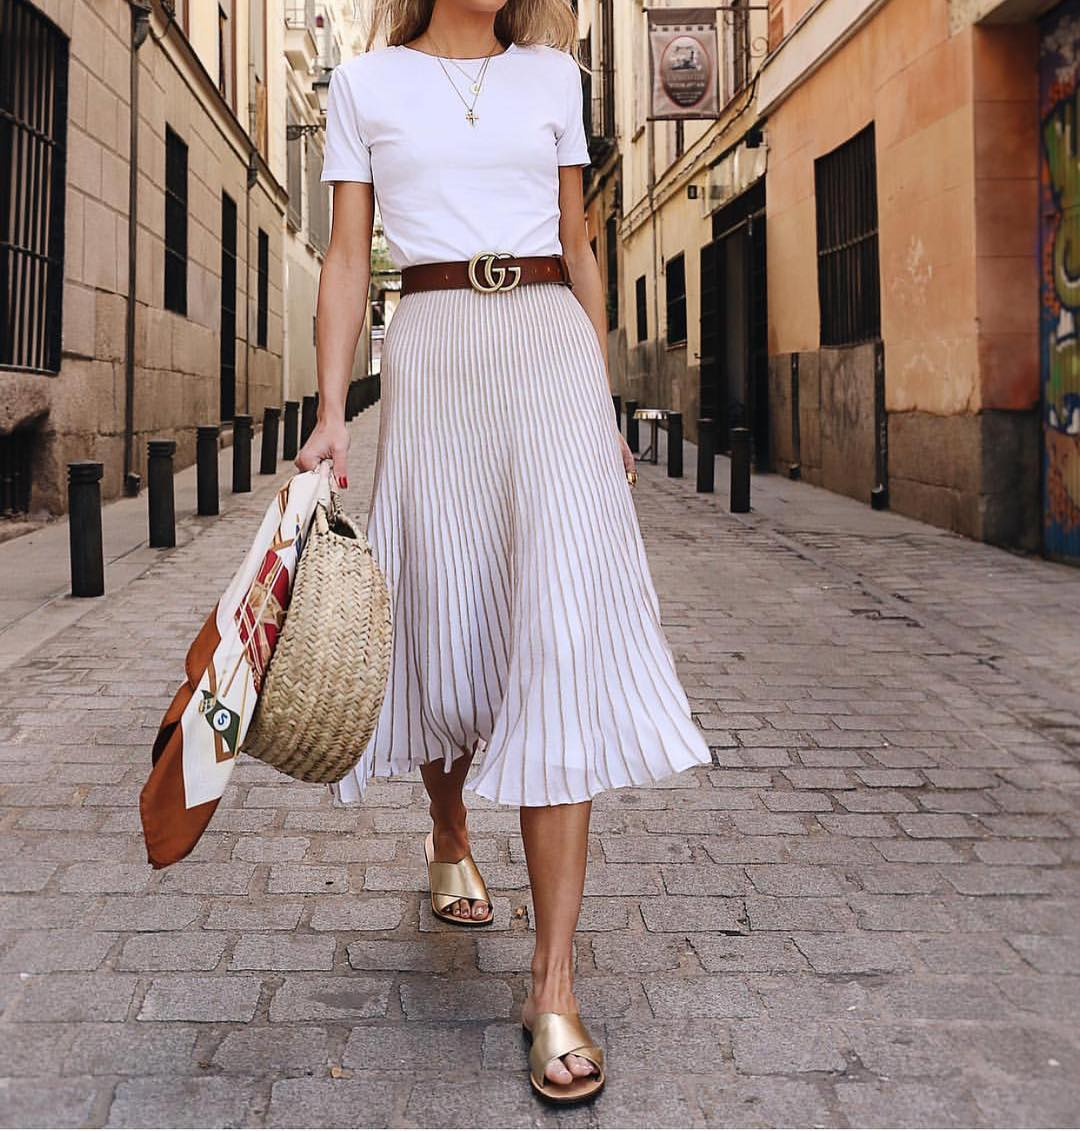 How To Make Knife-Pleated Midi Skirt Look Sweet And Sassy This Summer 2021